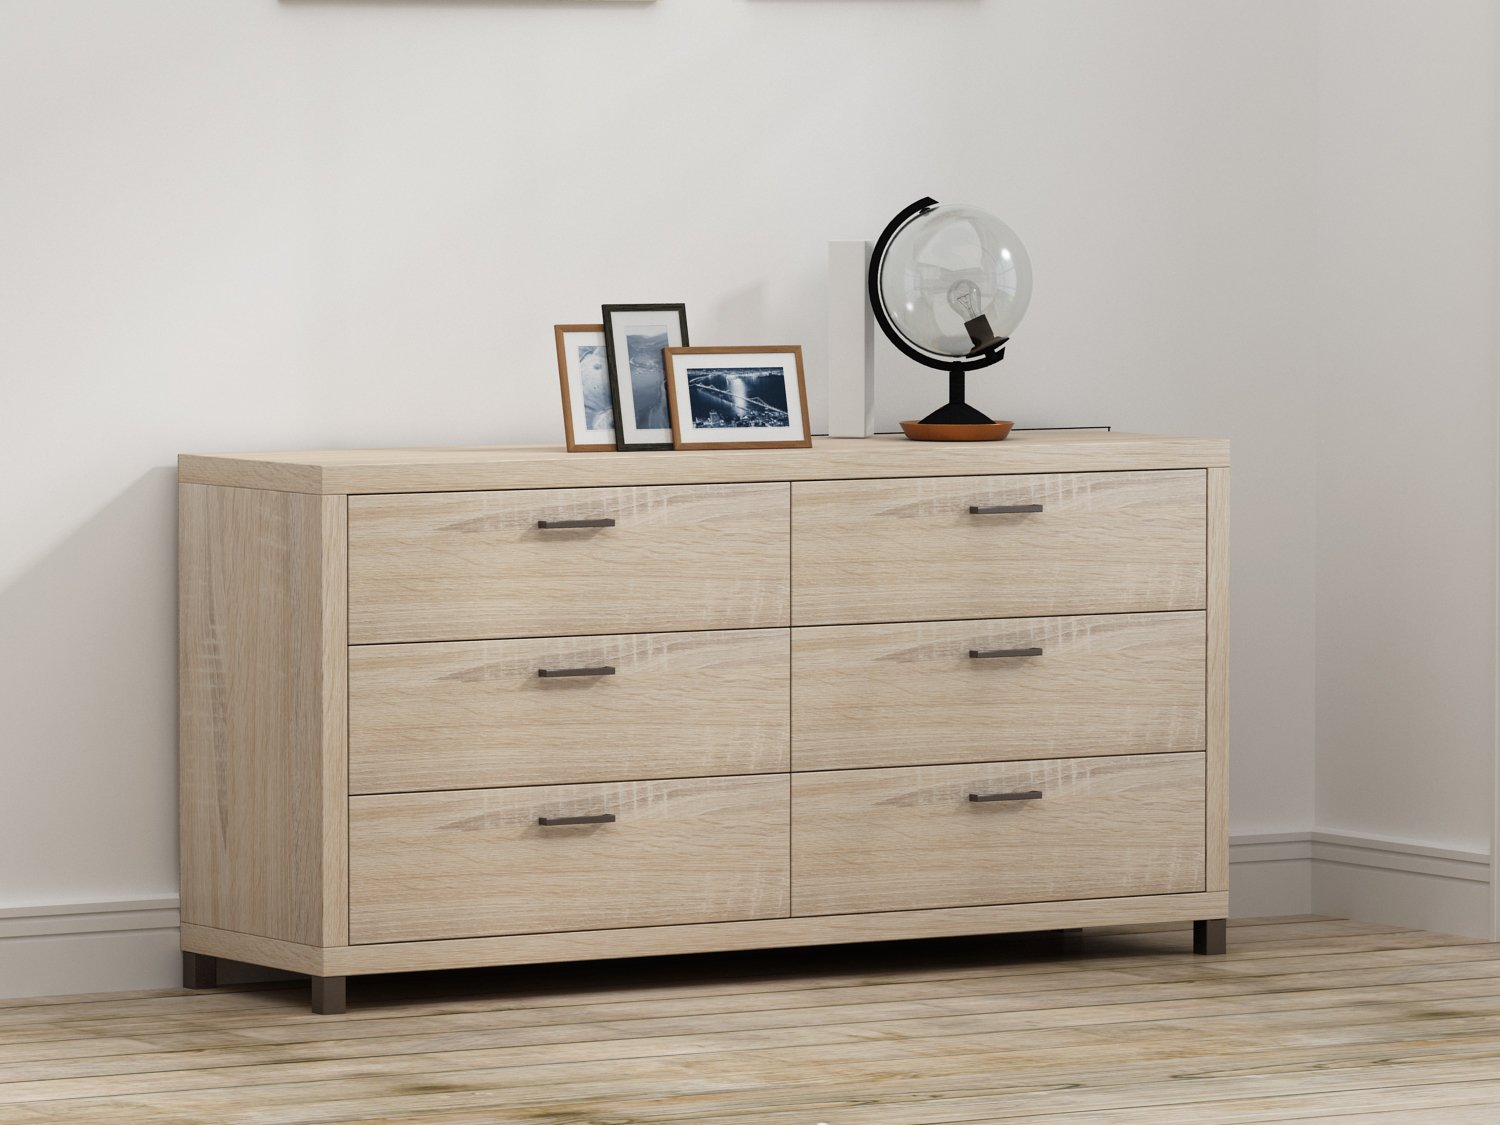 Brown 6 drawer dresser made from engineered wood and laminate sturdy construction metal feet handles bedroom furniture chest bundle with our expert